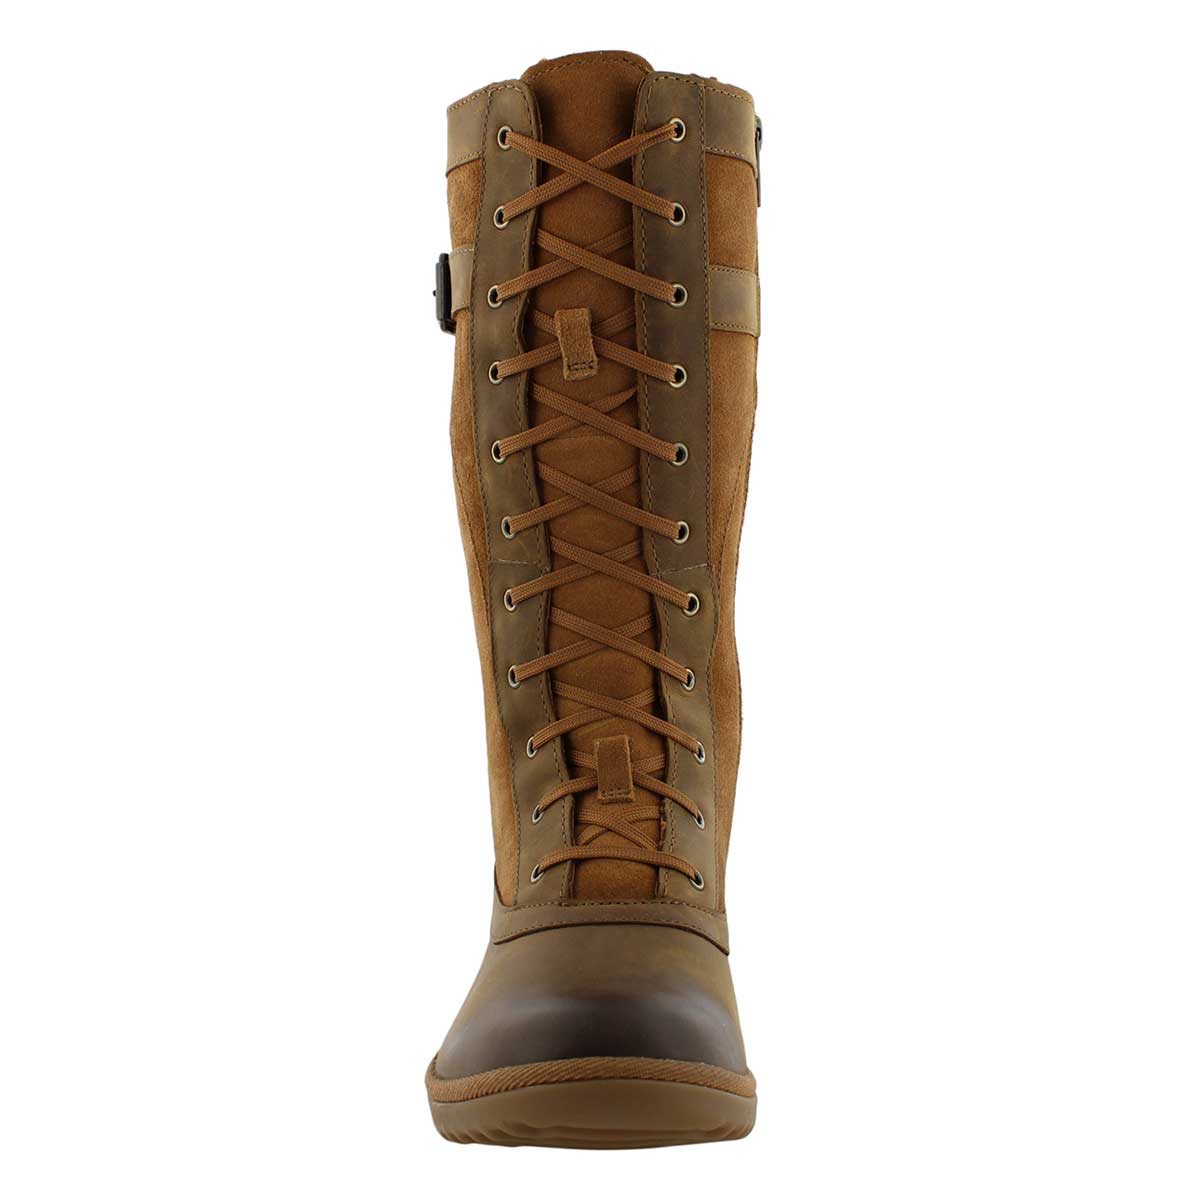 Lds Brystl Tall ches wtpf mid calf boot